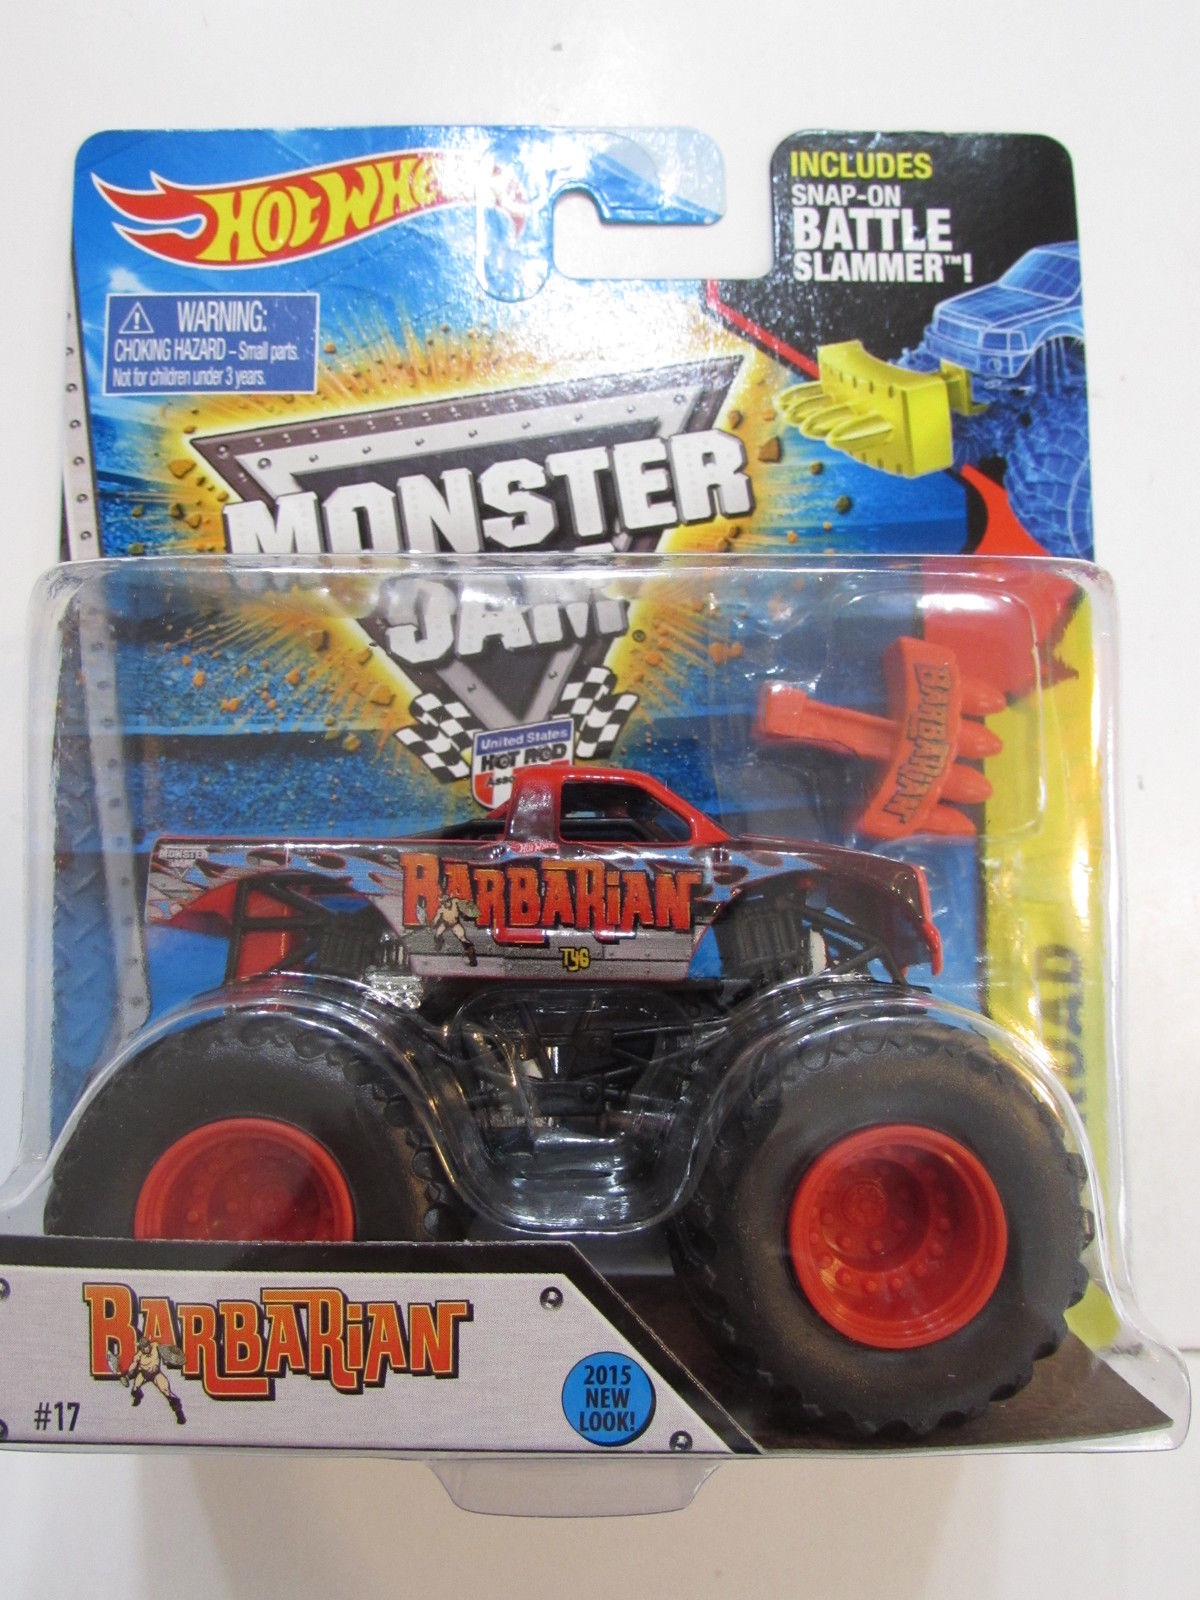 HOT WHEELS MONSTER JAM - BARBARIAN INCLUDES SNAP-ON BATTLE SLAMMER